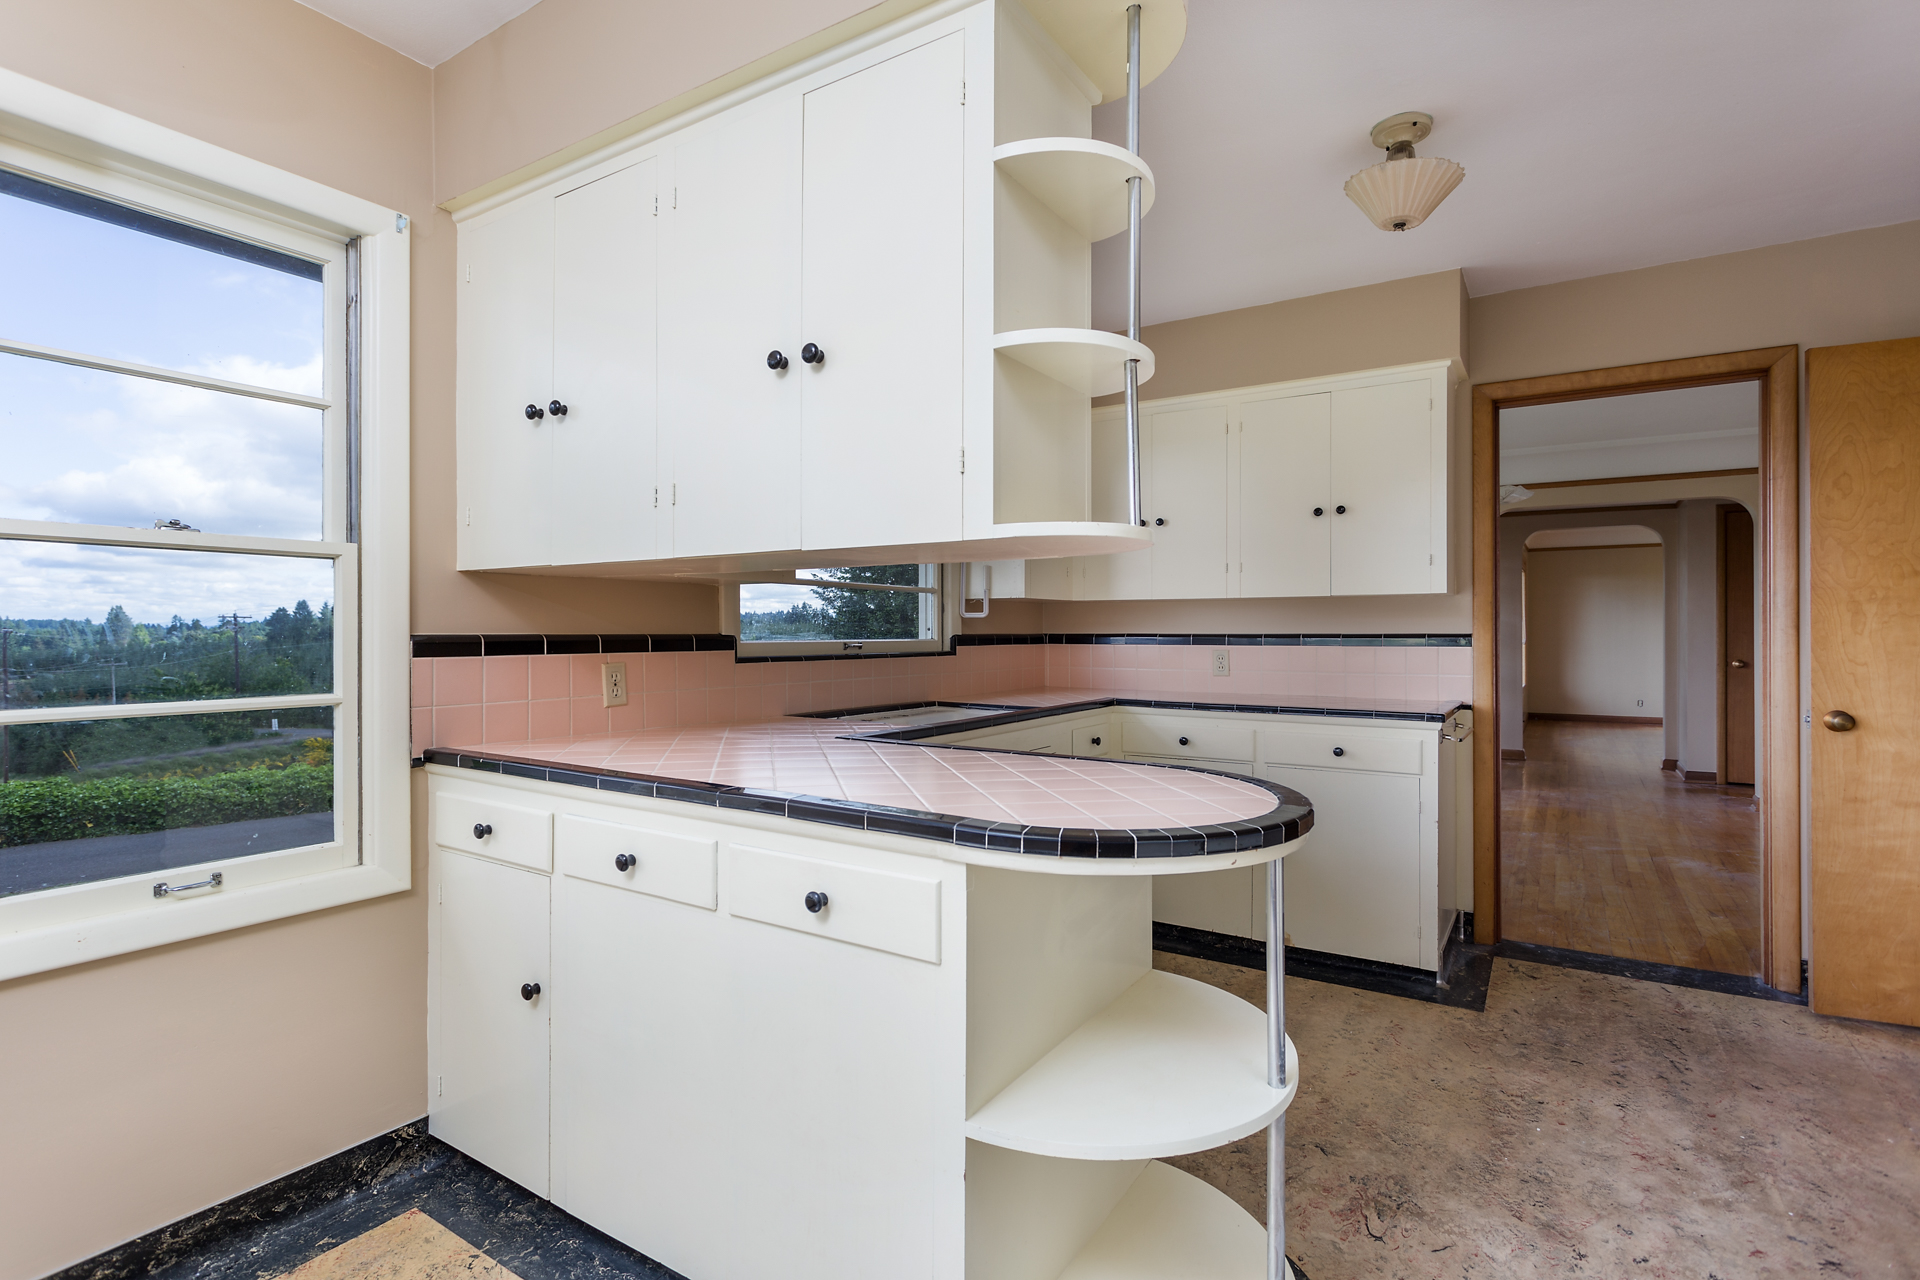 Kitchen with breakfast nook and vintage counters.